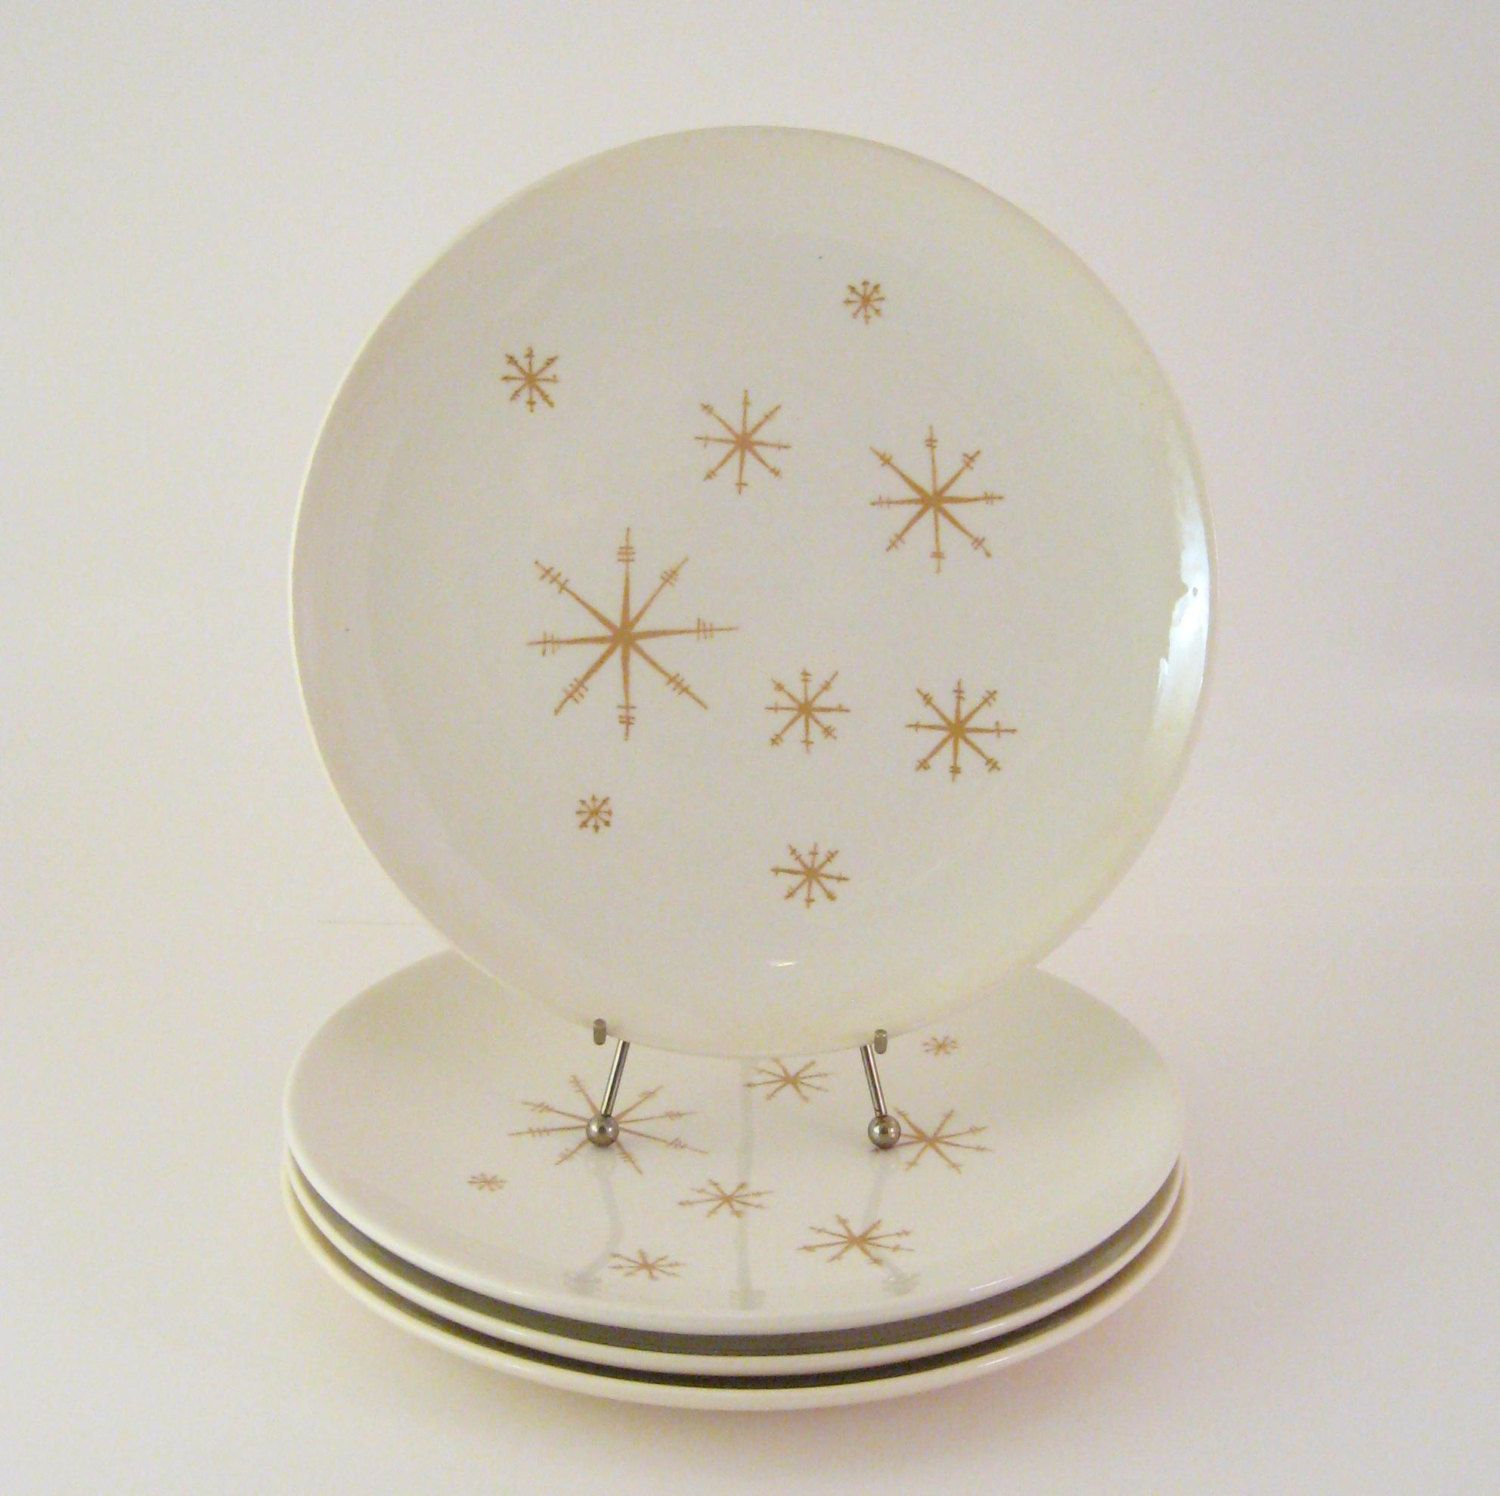 Vintage Star Glow Dinner Plates Set of 4 Crystal Royal China Mid- : star dinner plates - pezcame.com